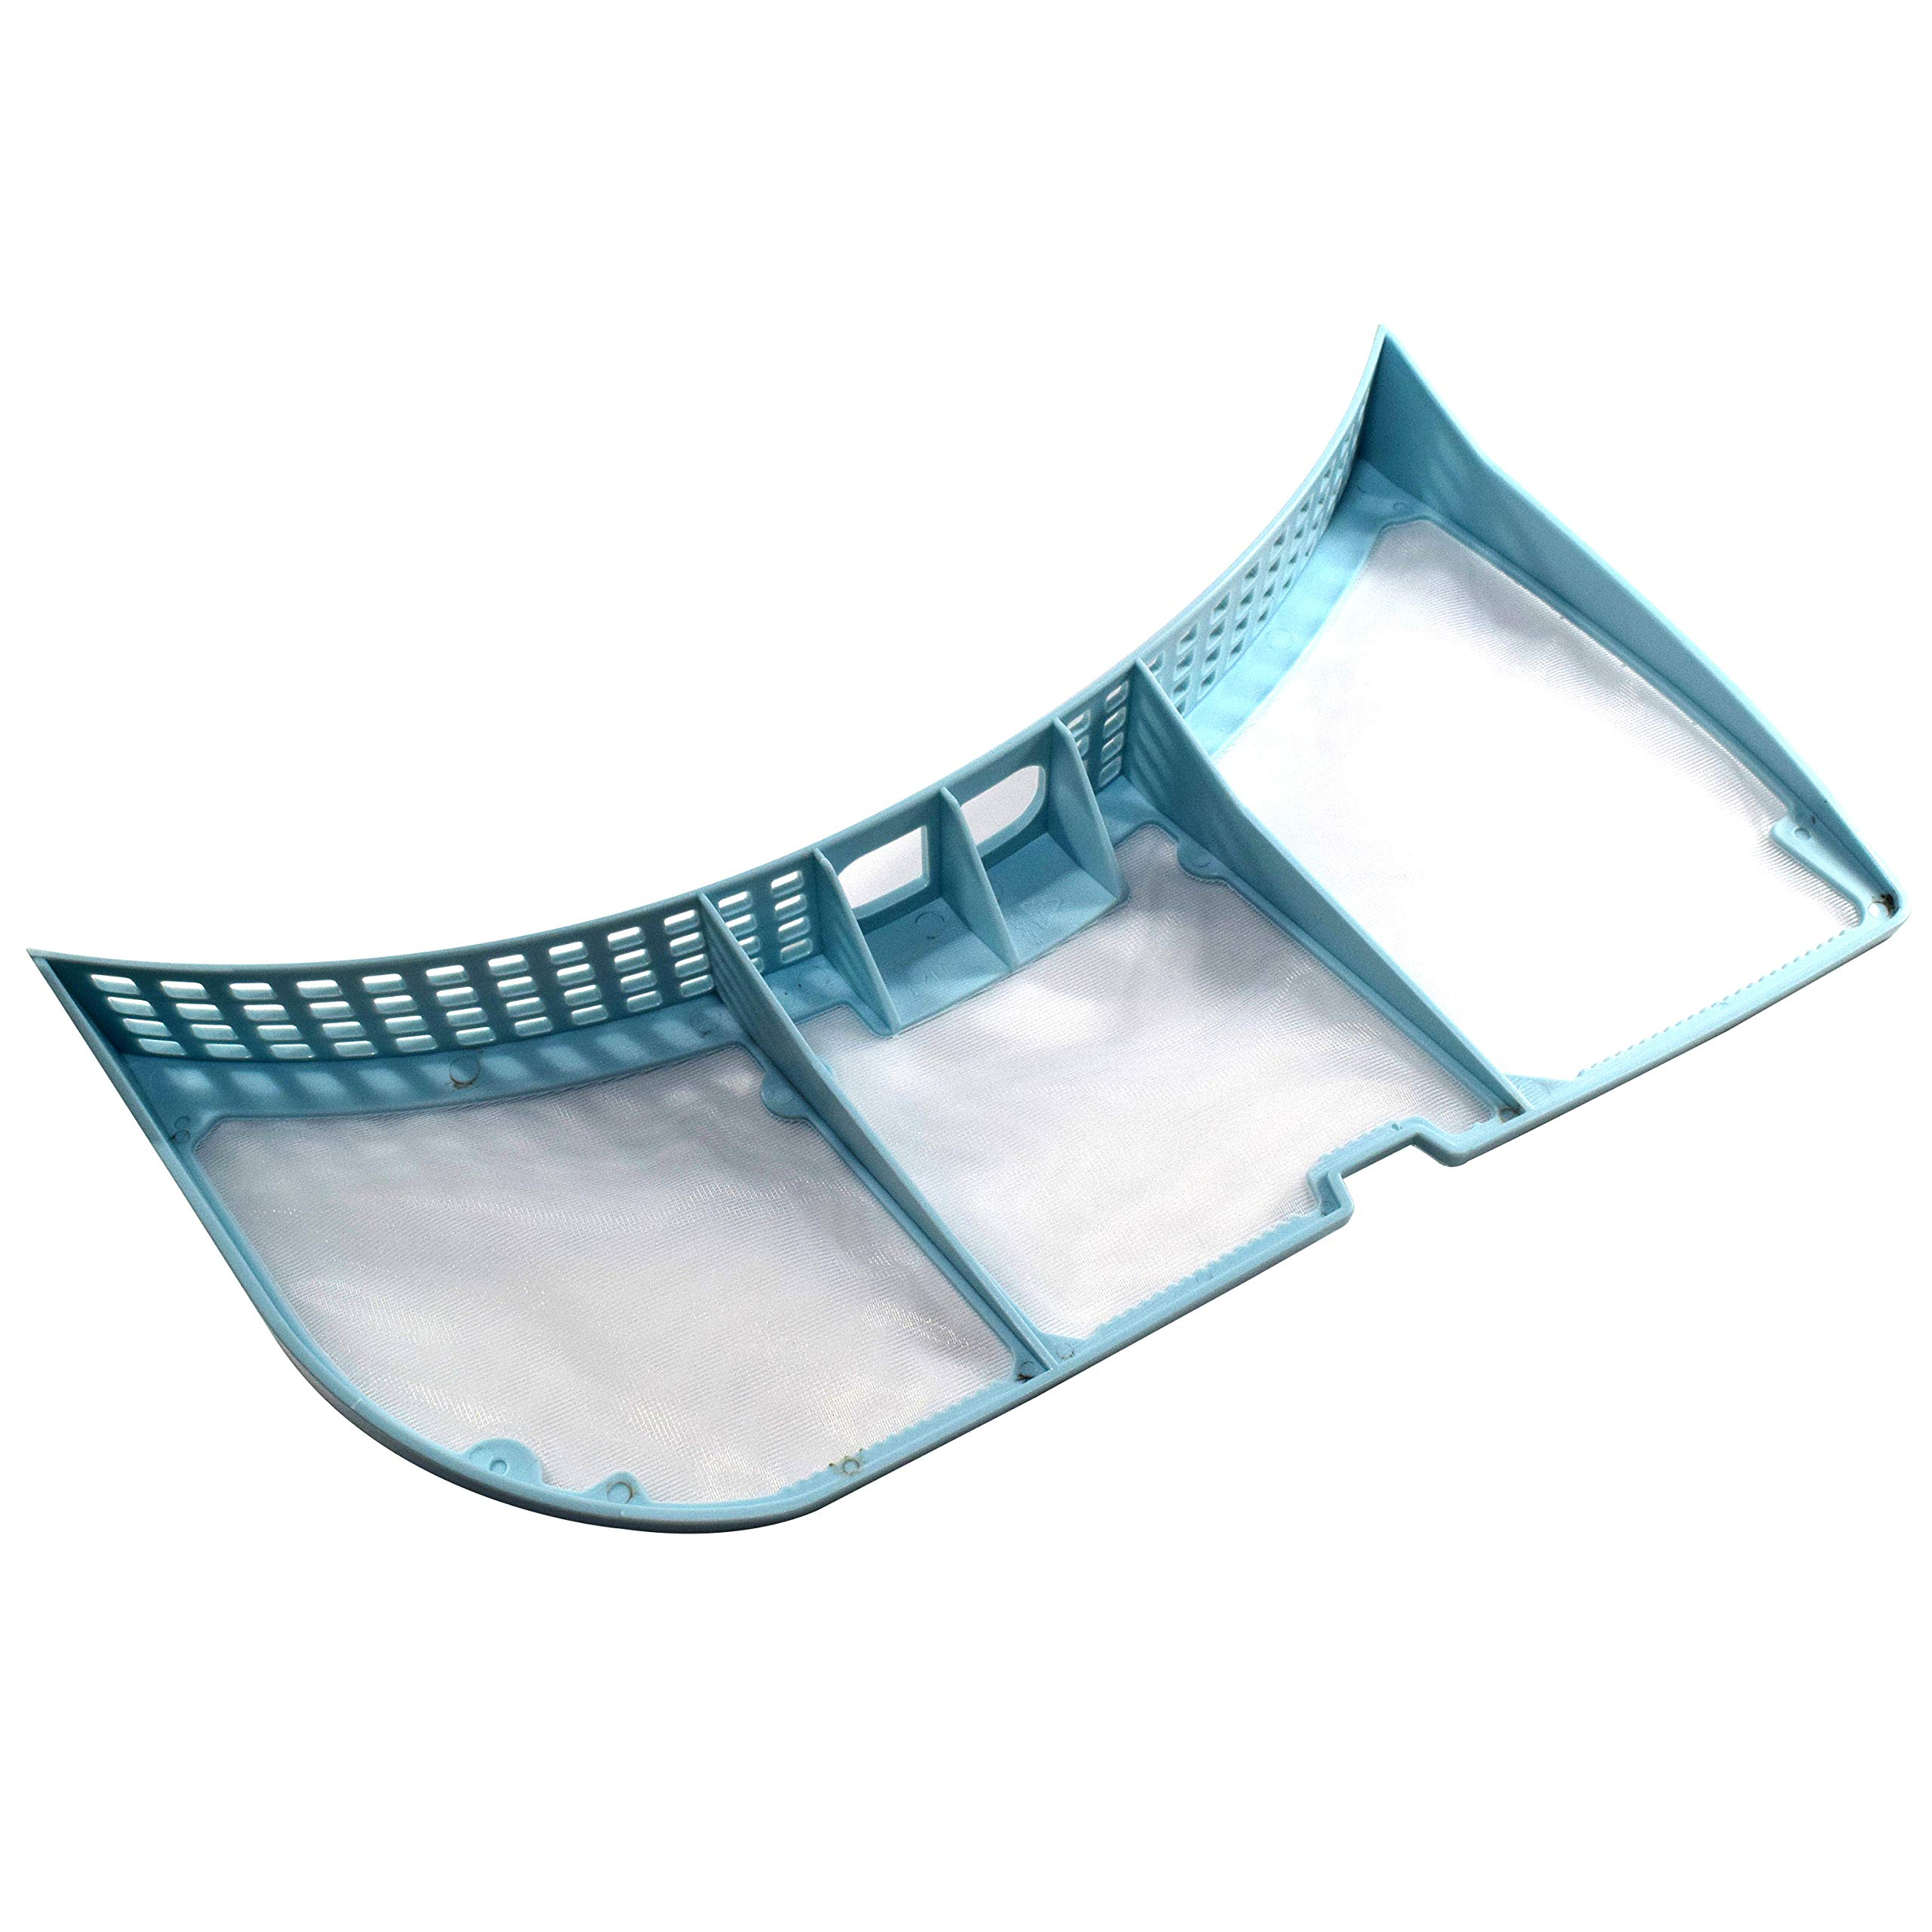 HQRP Dryer Lint Filter compatible with Hotpoint Indesit C00113848 HPTC00113848 J00146116 fits select Hotpoint, Indesit, Ariston, Creda & Proline Tumble Dryers